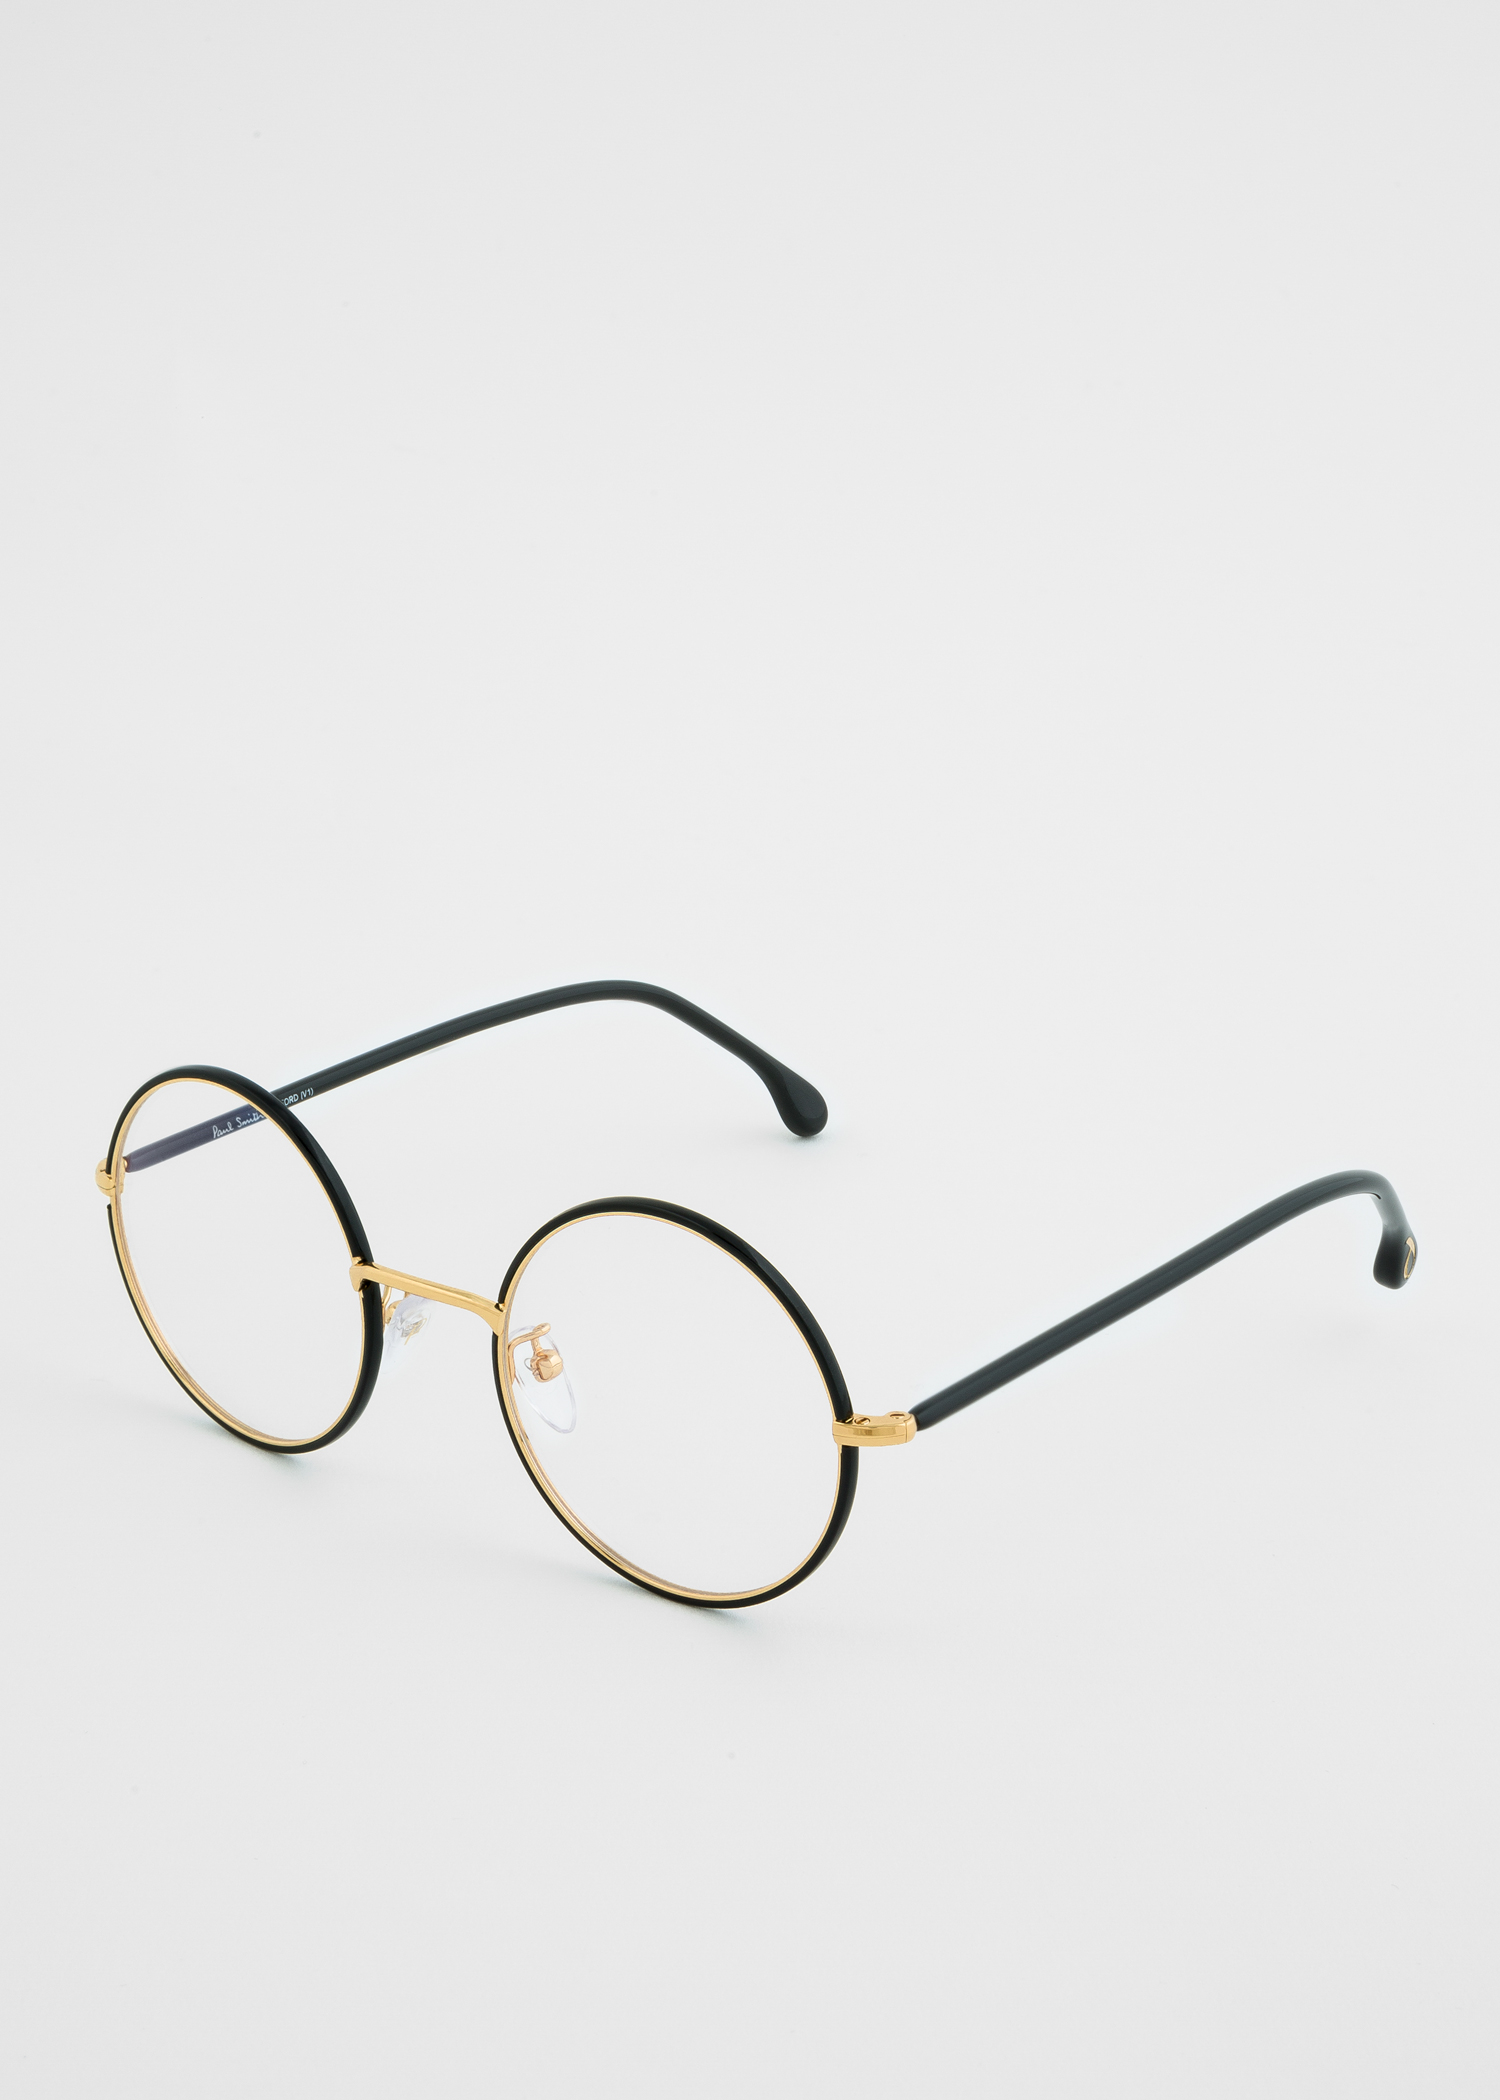 43f63d68d9 Paul Smith Black Ink And Gold  Alford  Spectacles - Paul Smith US